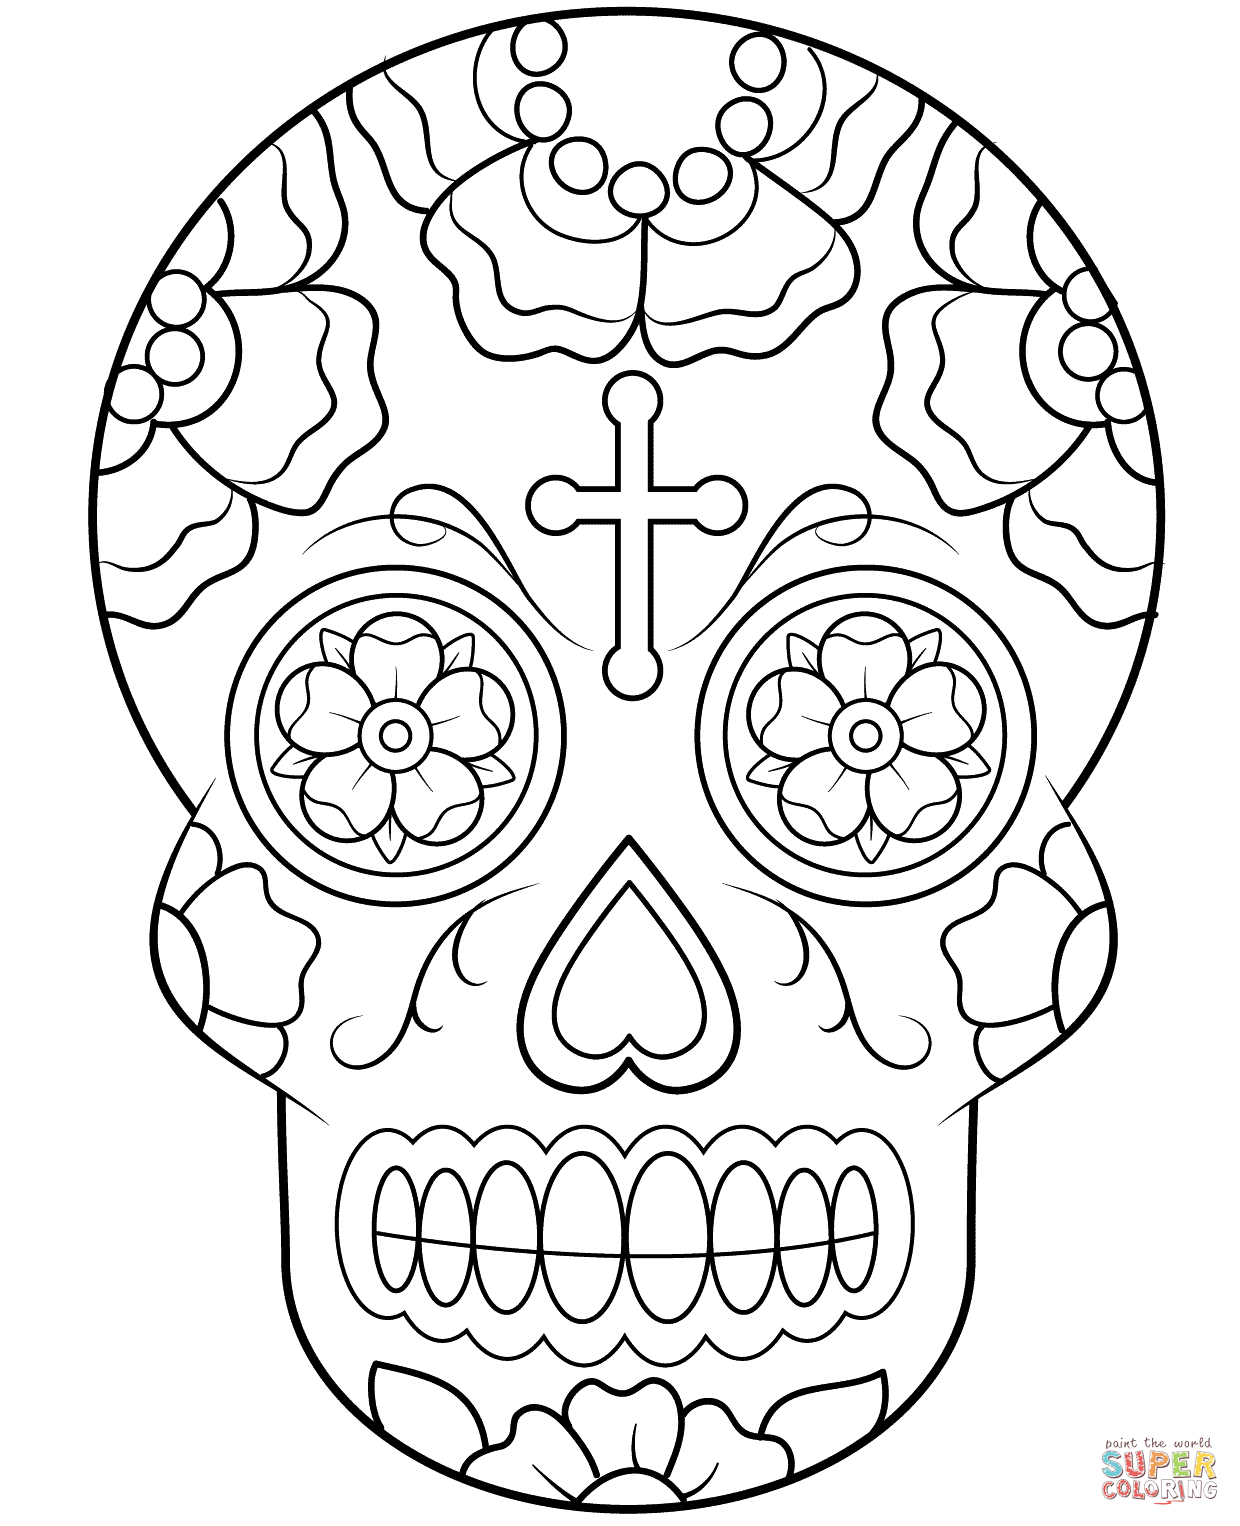 Sugar Skulls Coloring Pages | Free Coloring Pages - Free Printable Sugar Skull Coloring Pages